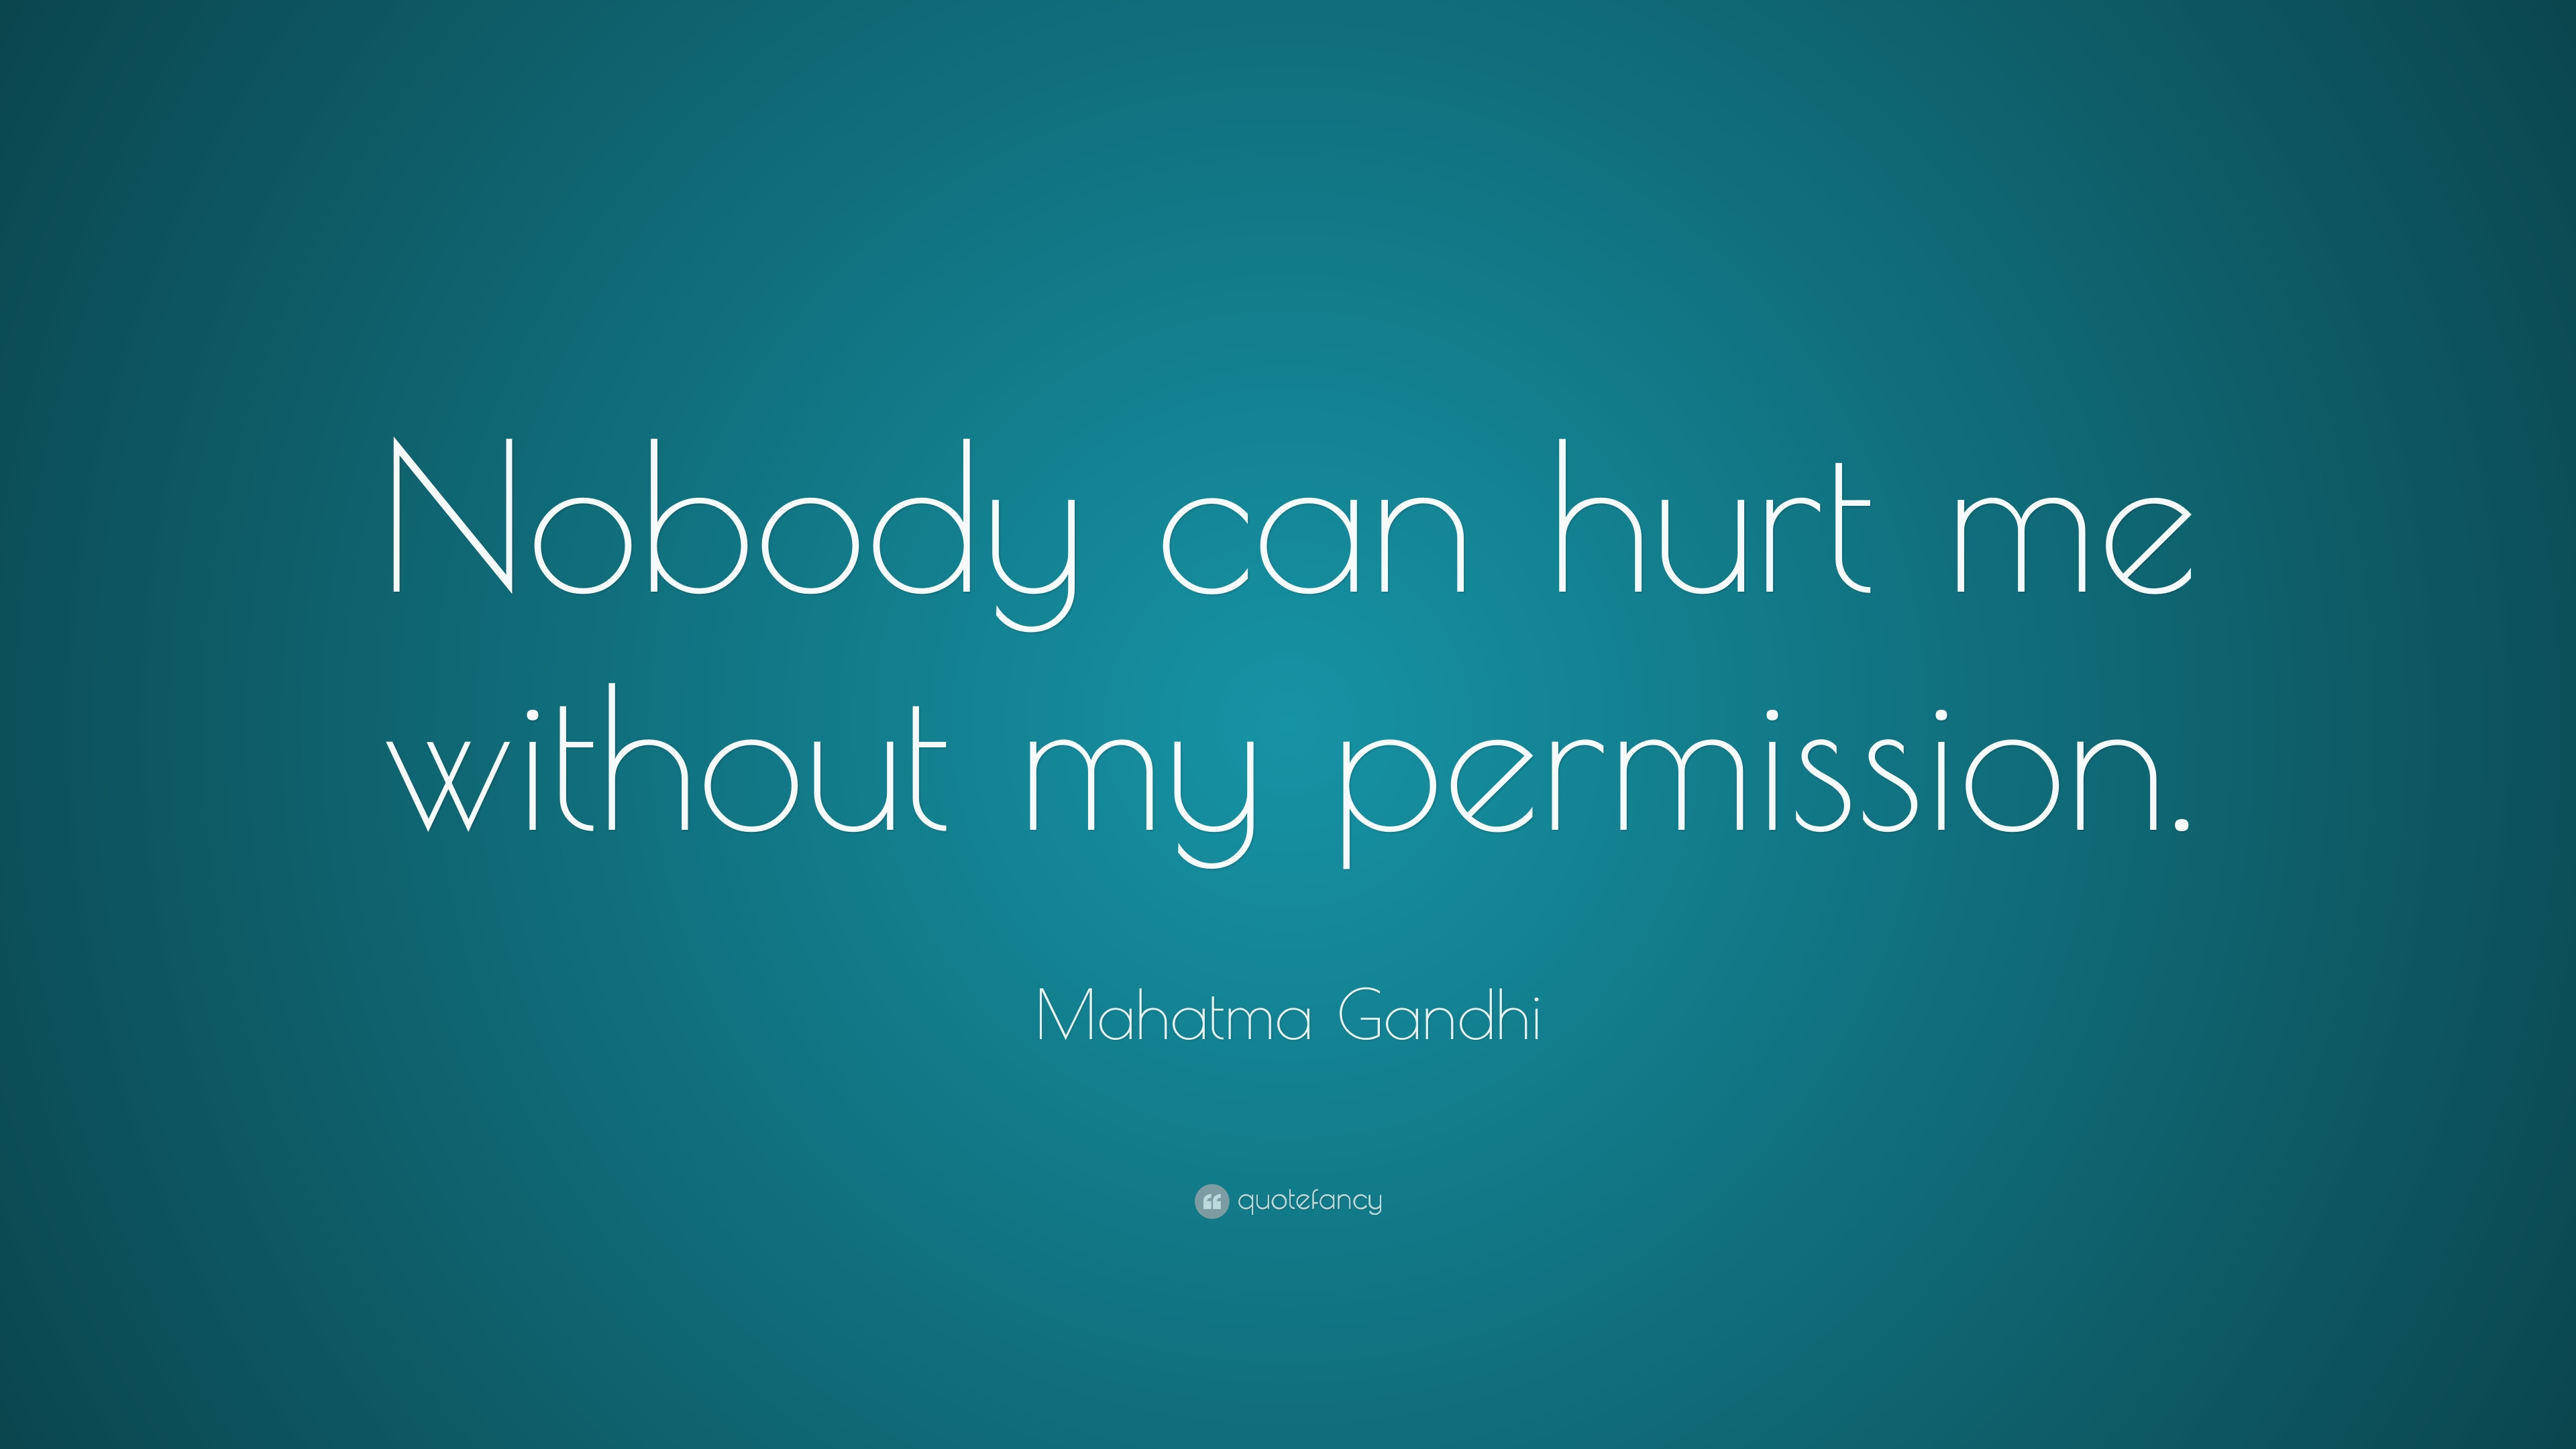 No Body Can Hurt Me without My Permission Gandhi